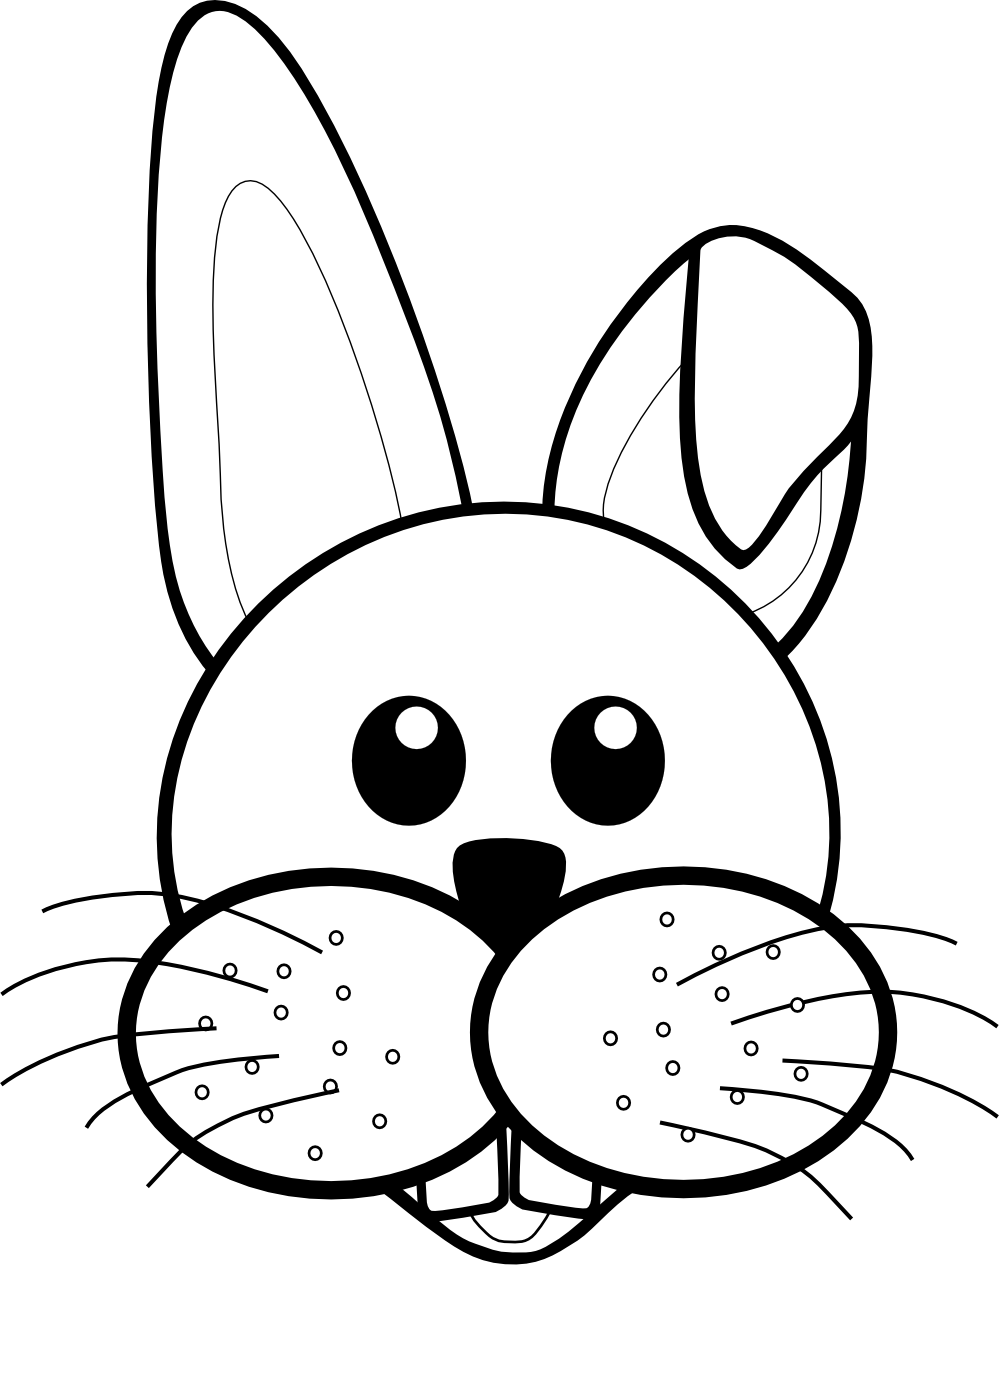 Animal Face Clipart Black And White | Free download best Animal Face ...